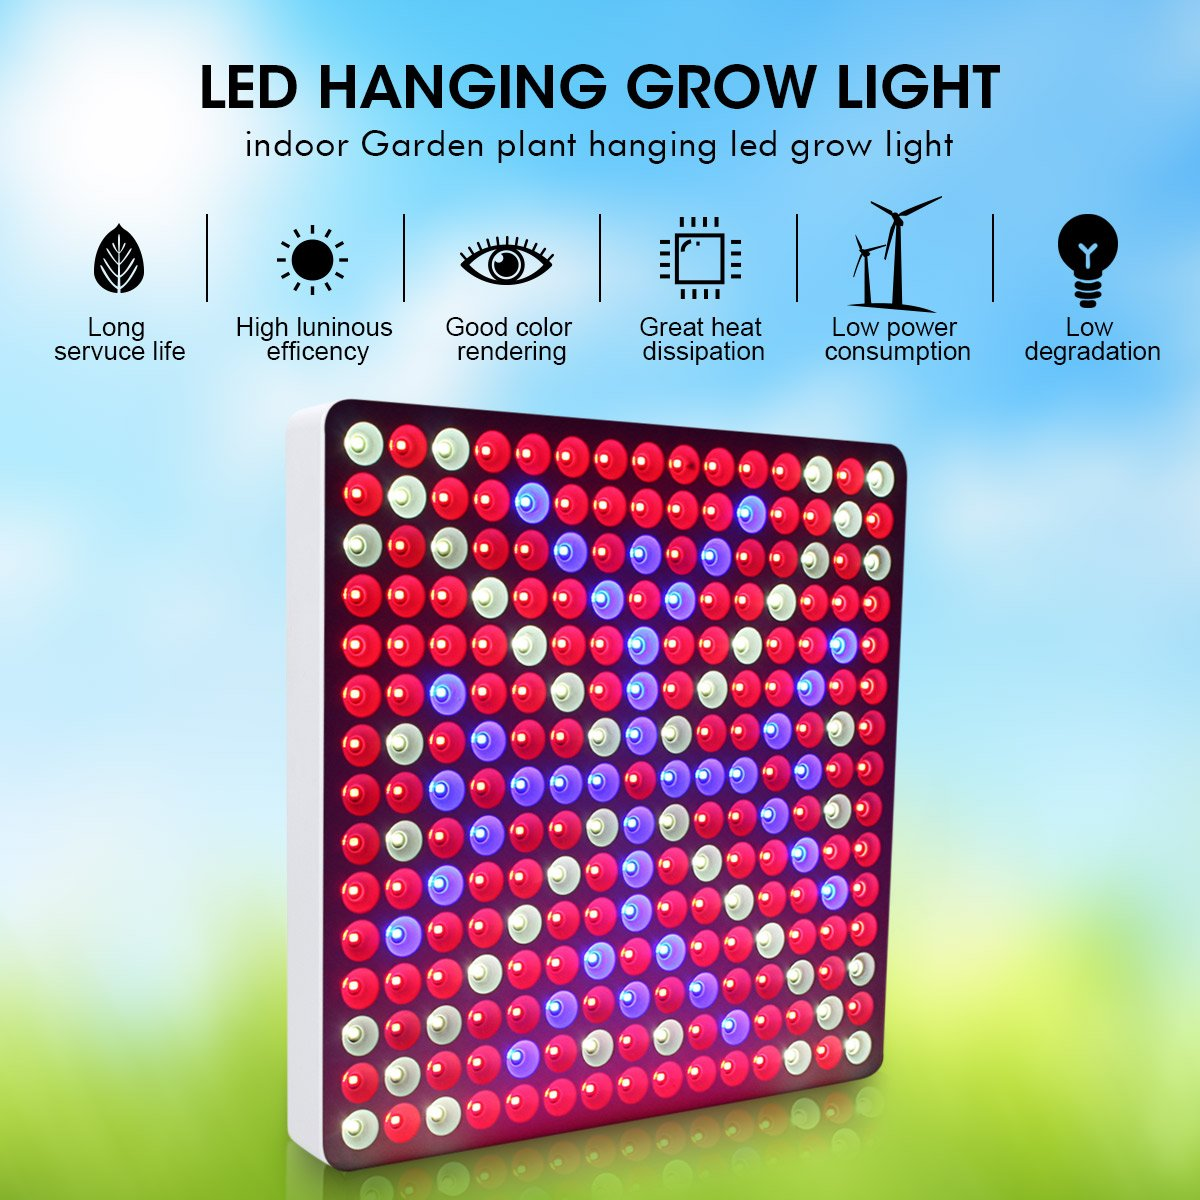 LED Hanging Grow Lights, Pathonor Kepler-50B 50W LED Full Spectrum LED Hanging Plant Grow Light for Indoor Plant Garden Greenhouse Hydroponic Growing with Hang Rope